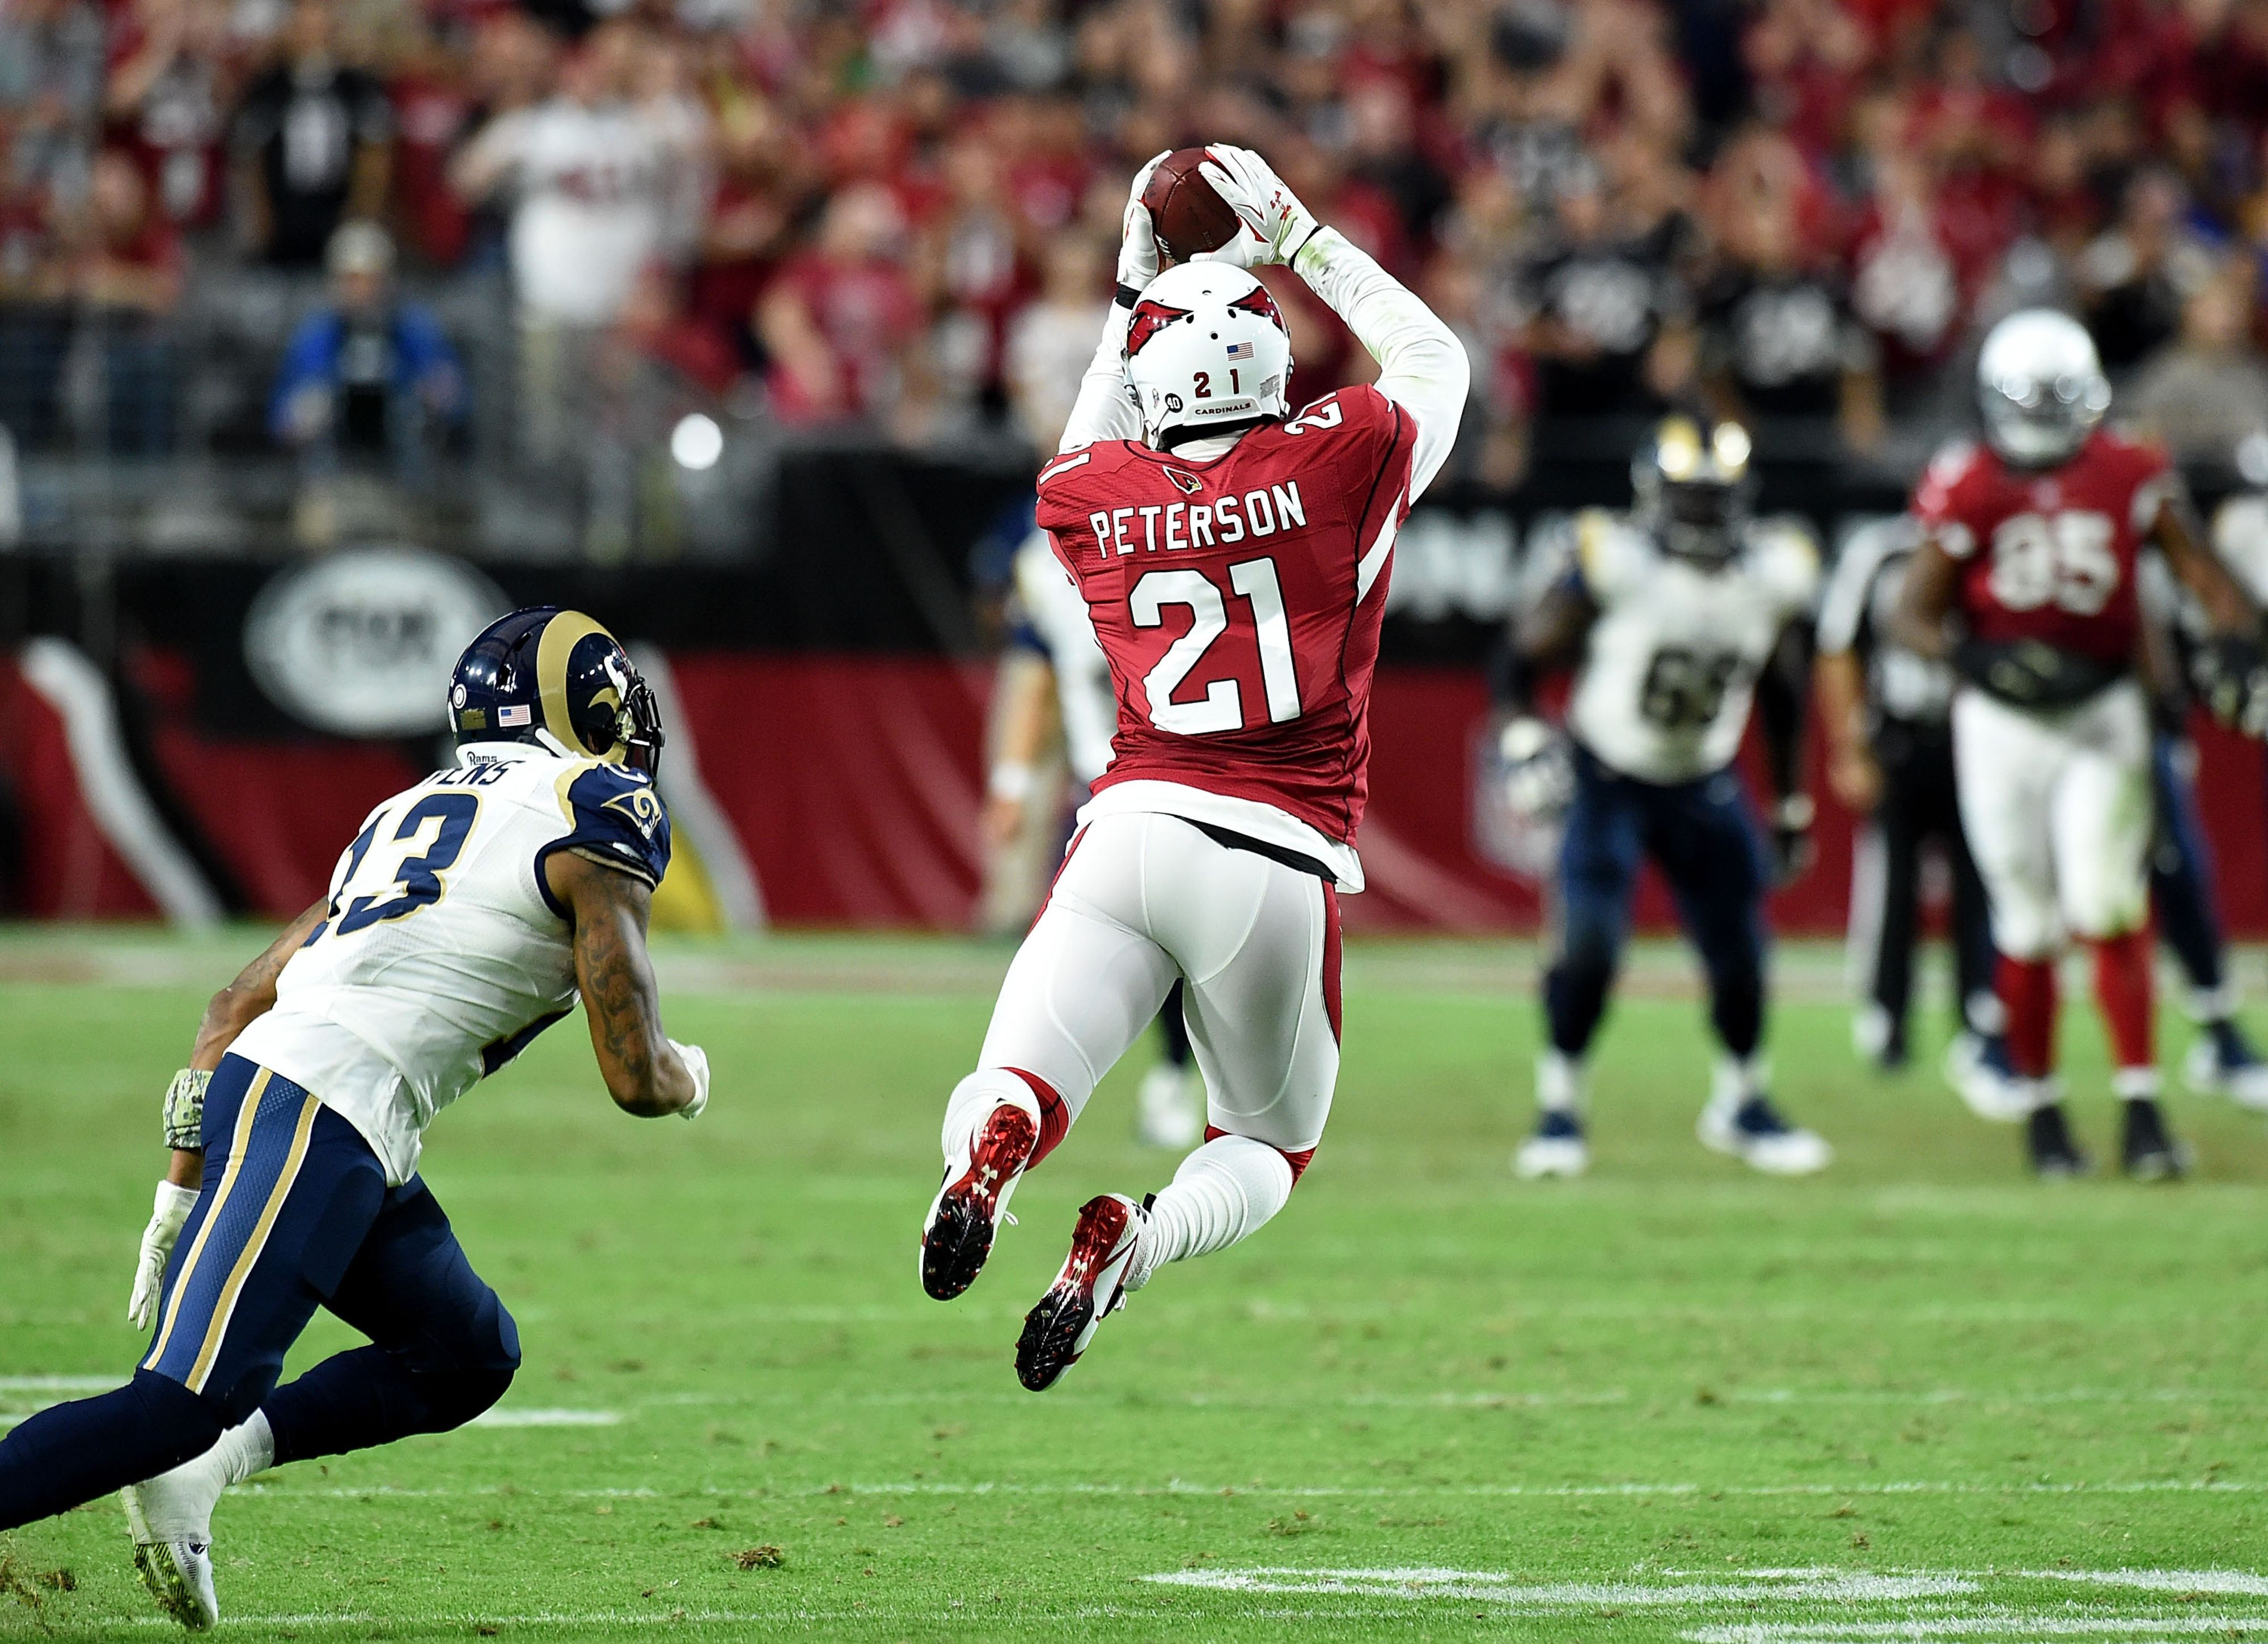 Patrick Peterson Wallpapers High Quality Download 4000x2900